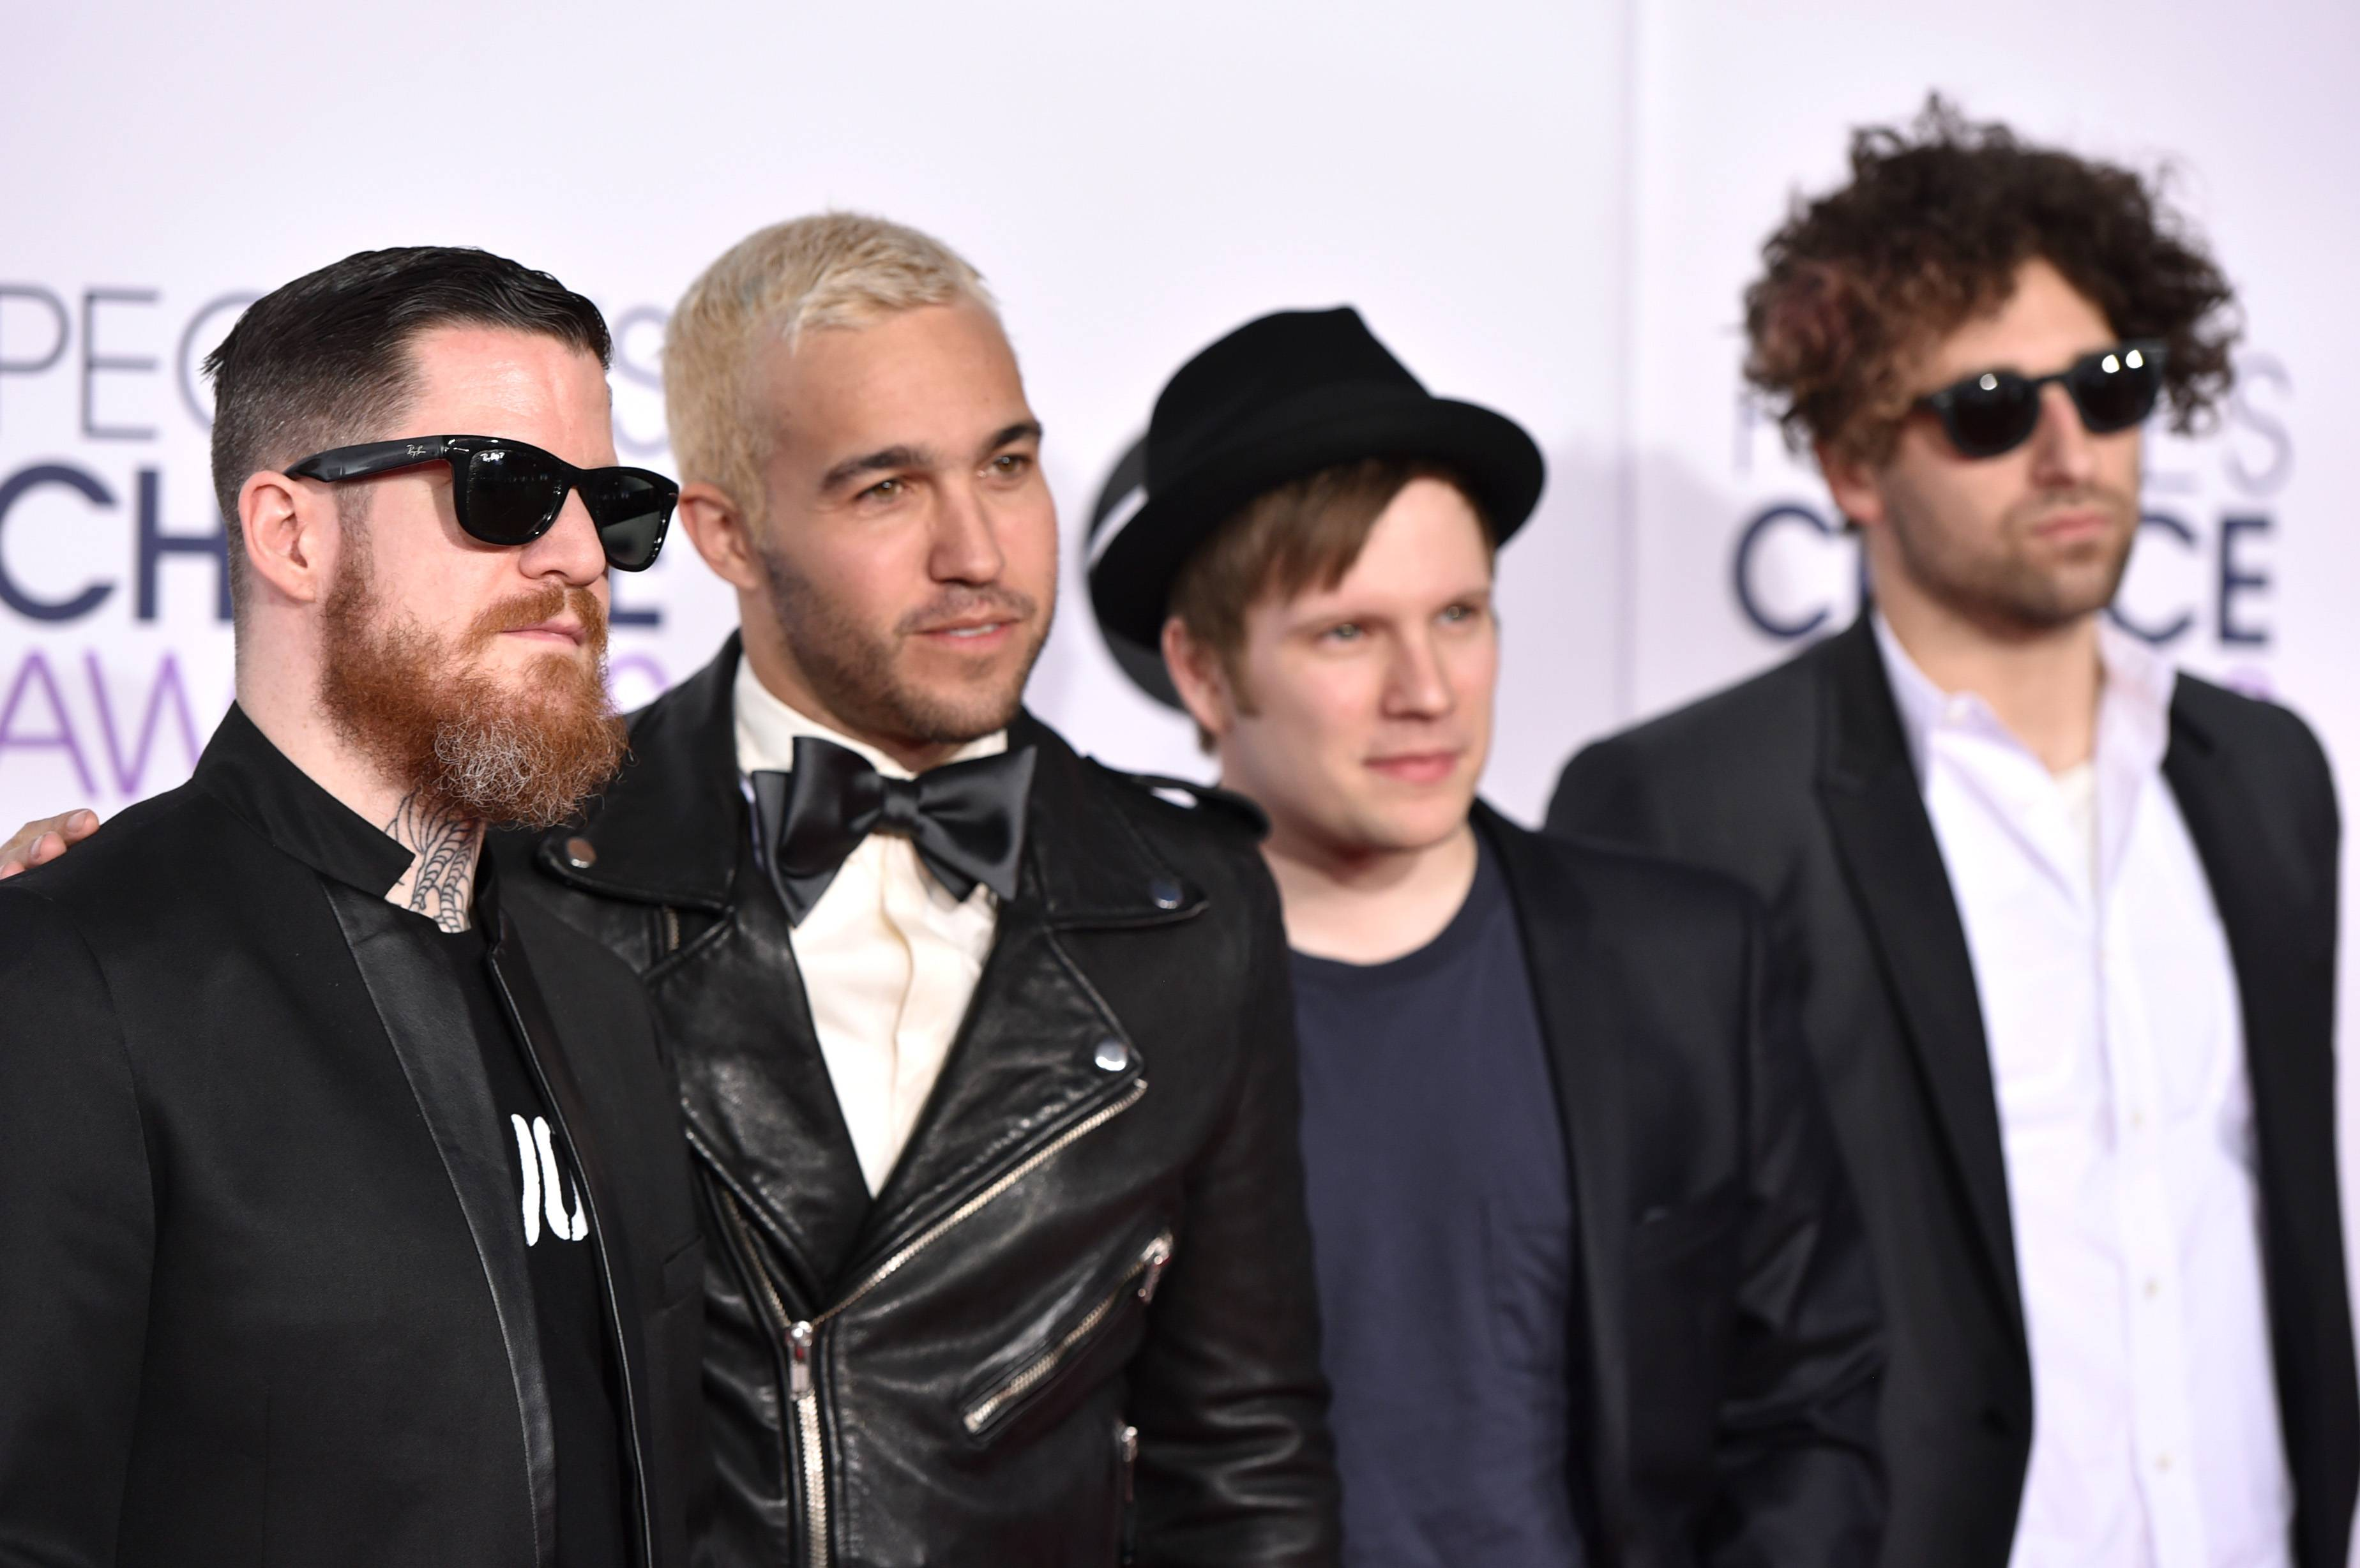 Andy Hurley, from left, Peter Wentz, Patrick Stump, and Joe Trohman of Fall Out Boy arrive at the People's Choice Awards at the Nokia Theatre on Wednesday, Jan. 7, 2015, in Los Angeles.